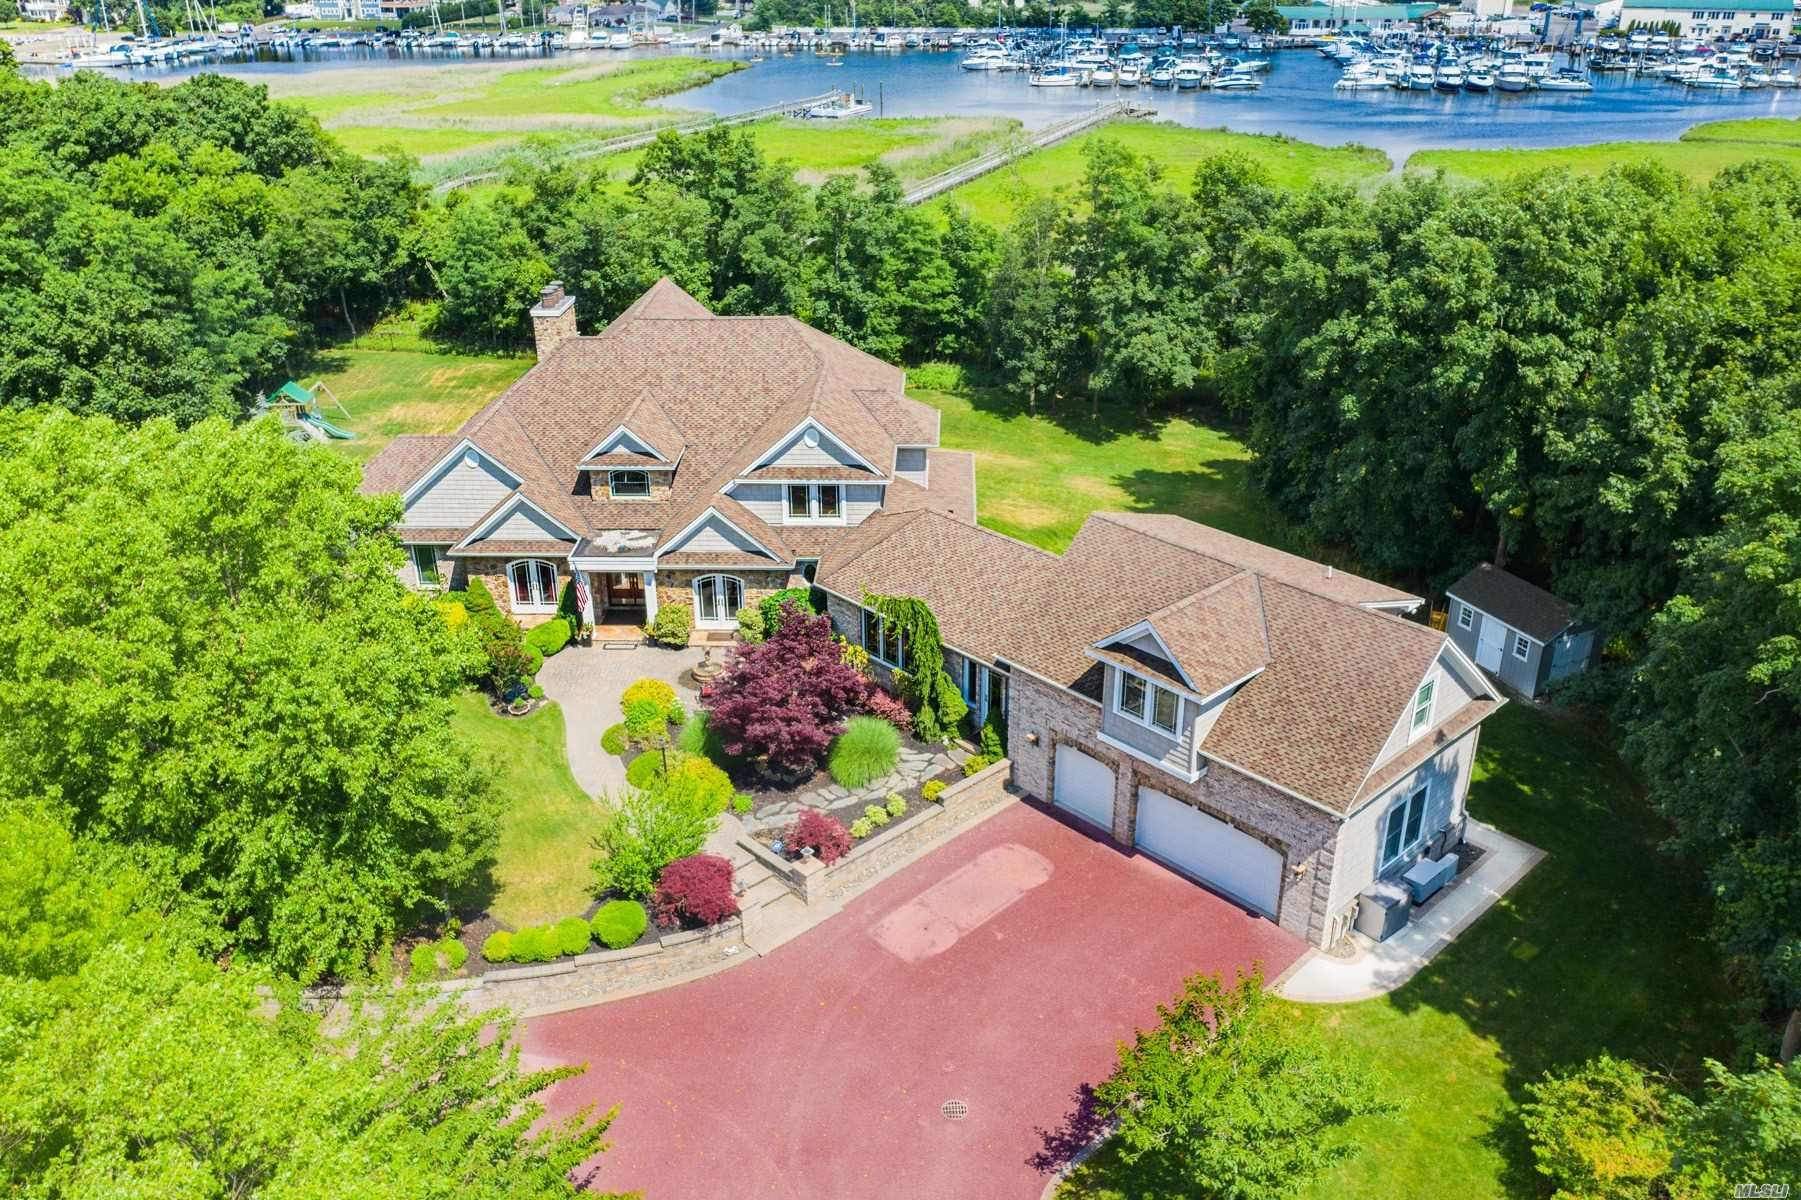 305 Roe Avenue, Patchogue, NY 11772 - MLS#: 3227558